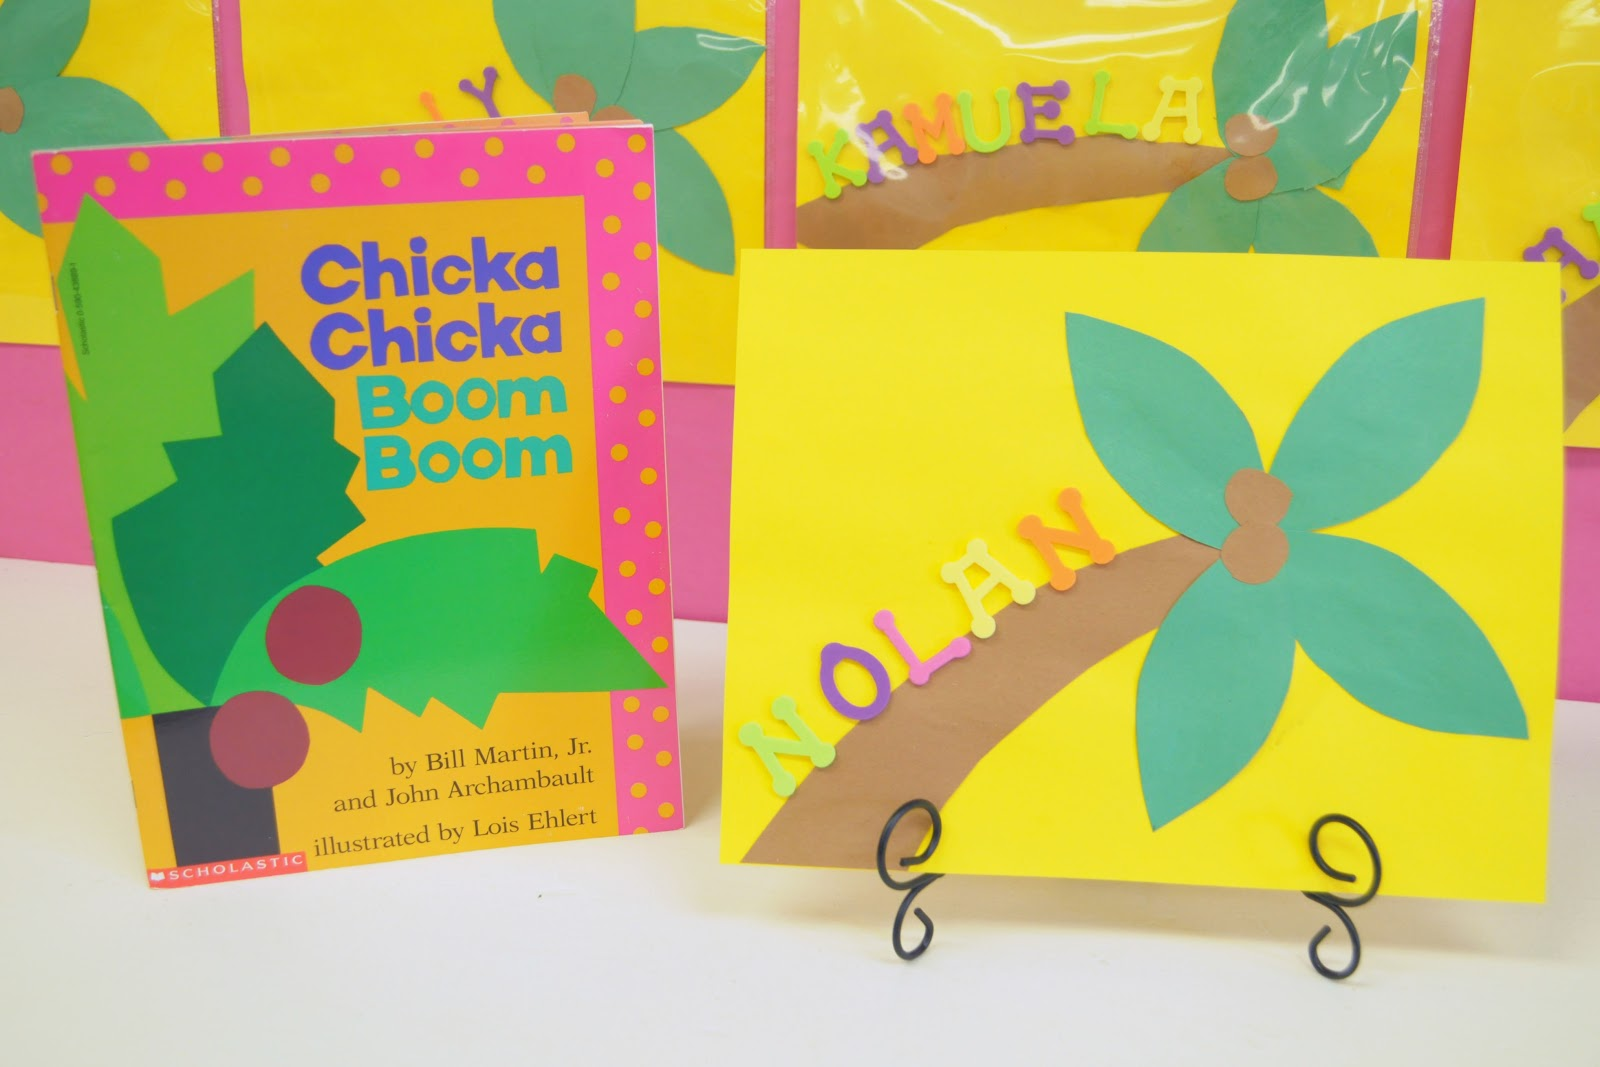 math worksheet : mrs ricca s kindergarten chicka chicka boom boom : Chicka Chicka Boom Boom Worksheets For Kindergarten